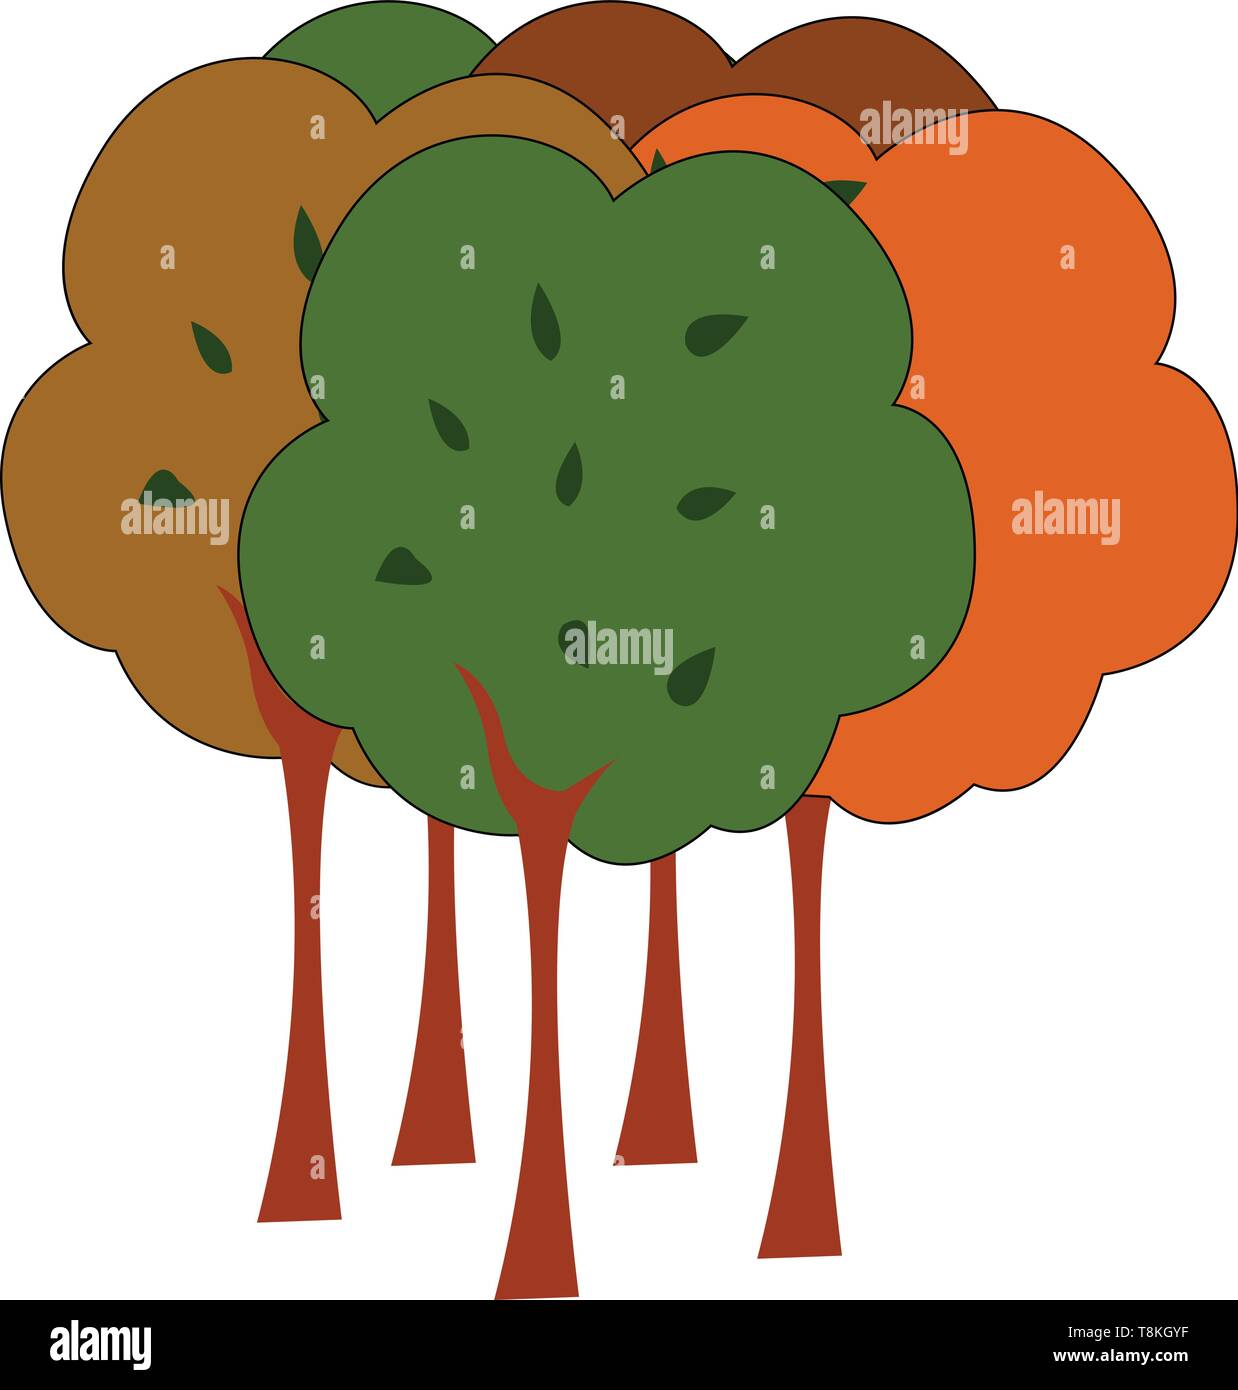 A Colour Illustration Of A Forest With Many Trees Vector Color Drawing Or Illustration Stock Vector Image Art Alamy